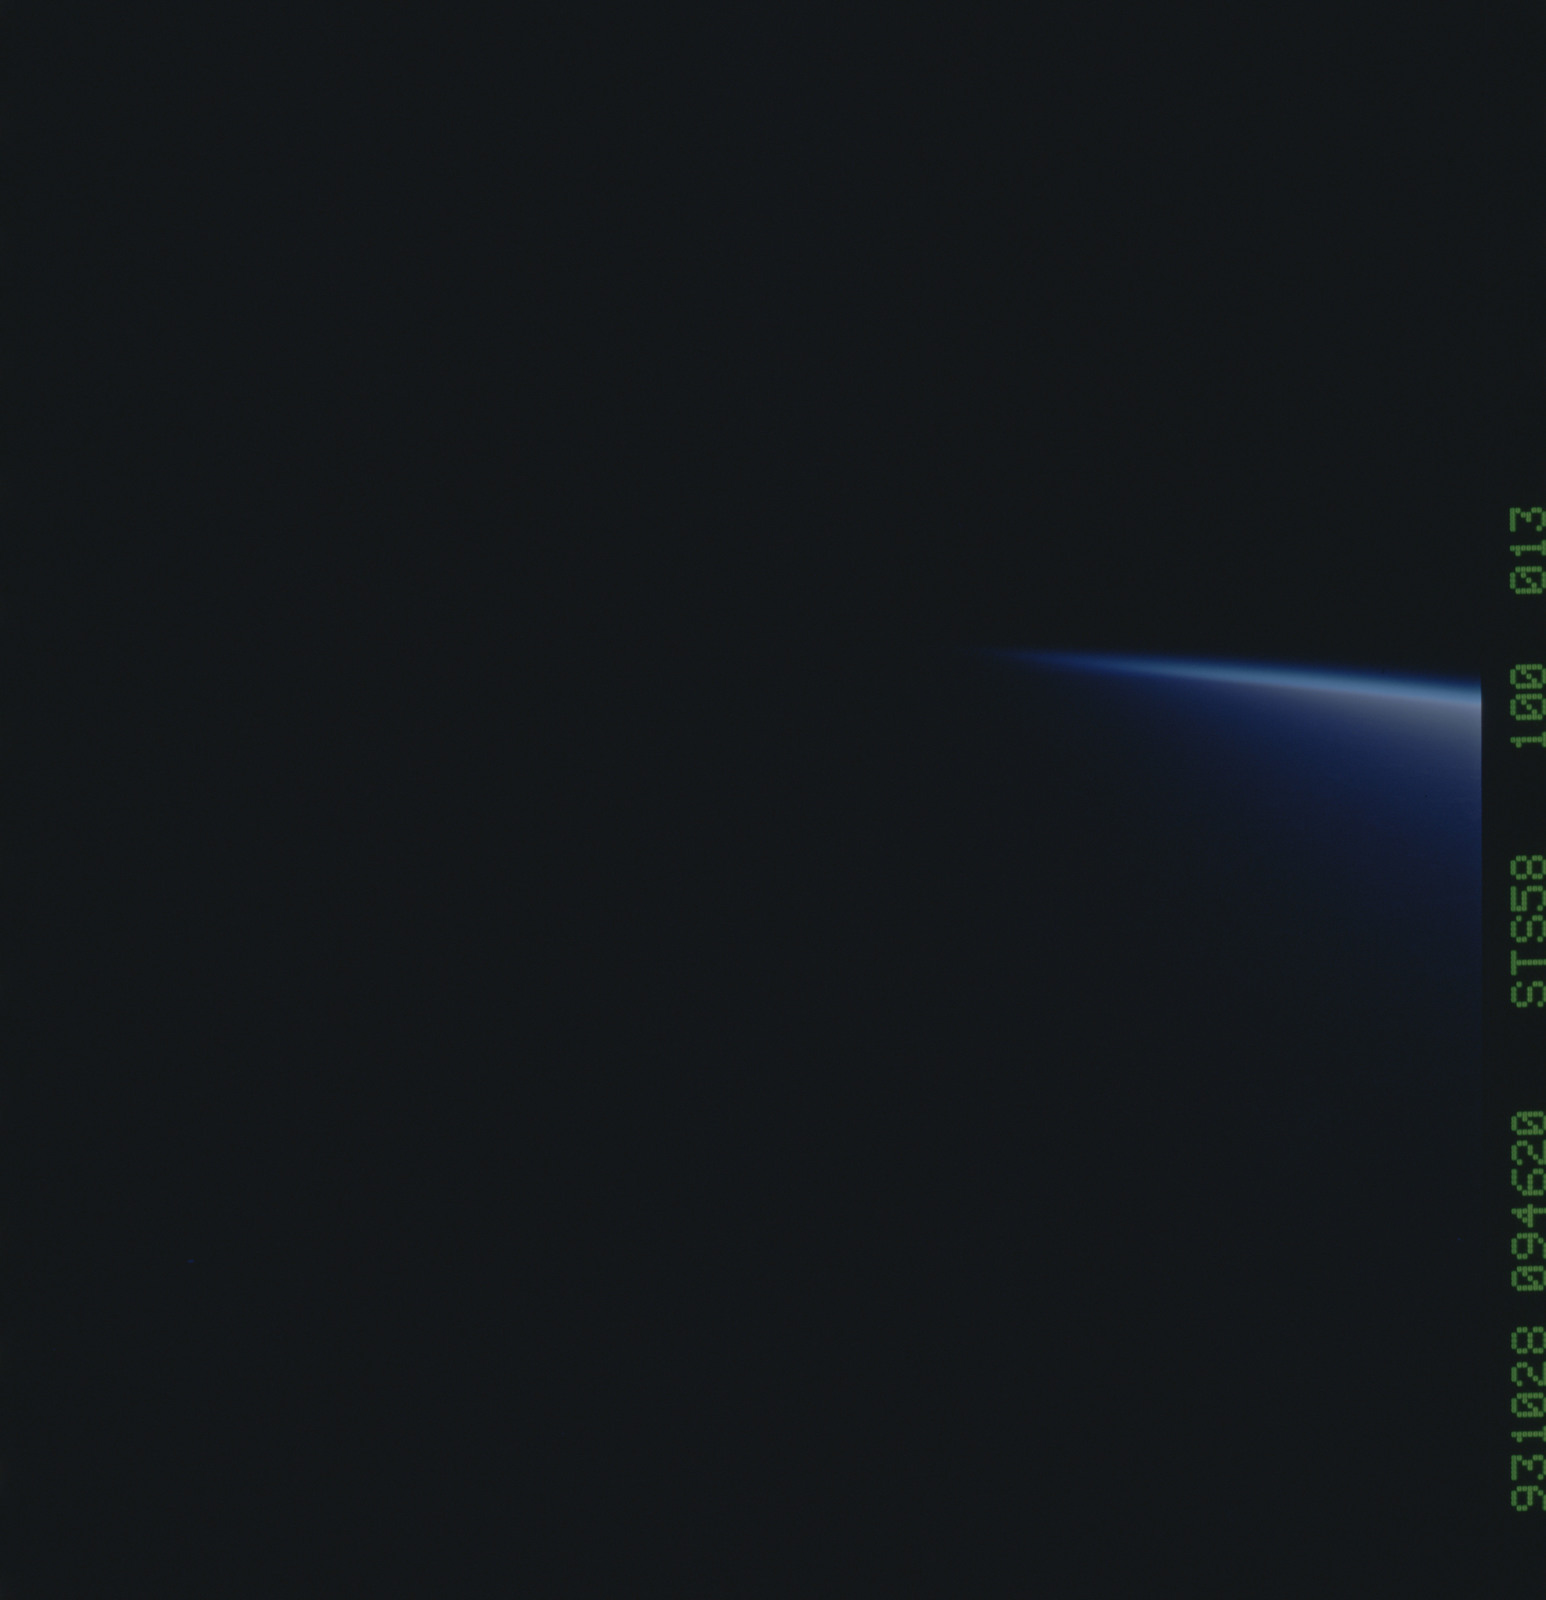 STS058-100-013 - STS-058 - Terminator barely visible over the Earth limb